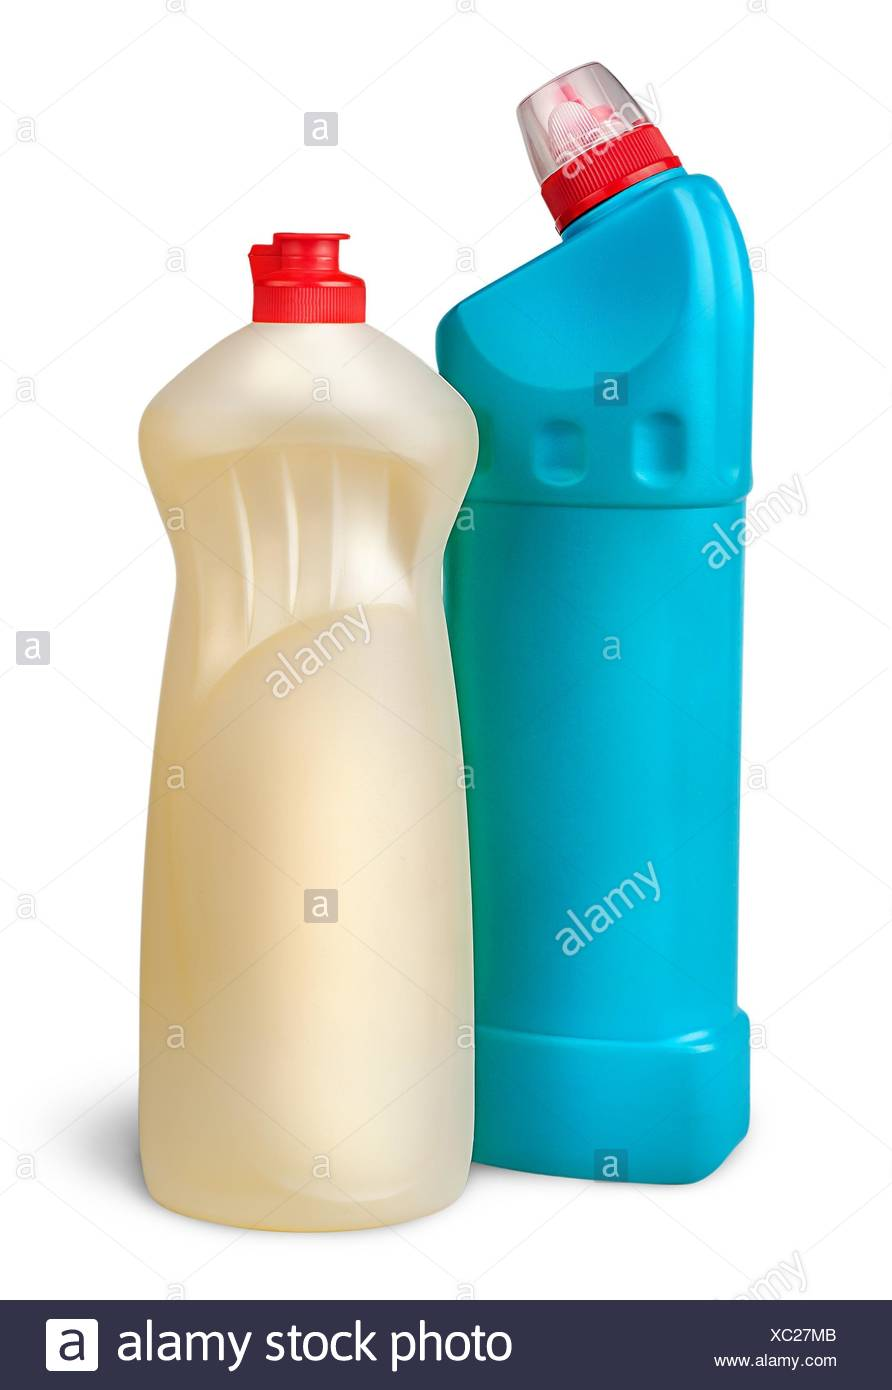 Two plastic bottles of disinfectant near isolated on white background. - Stock Image